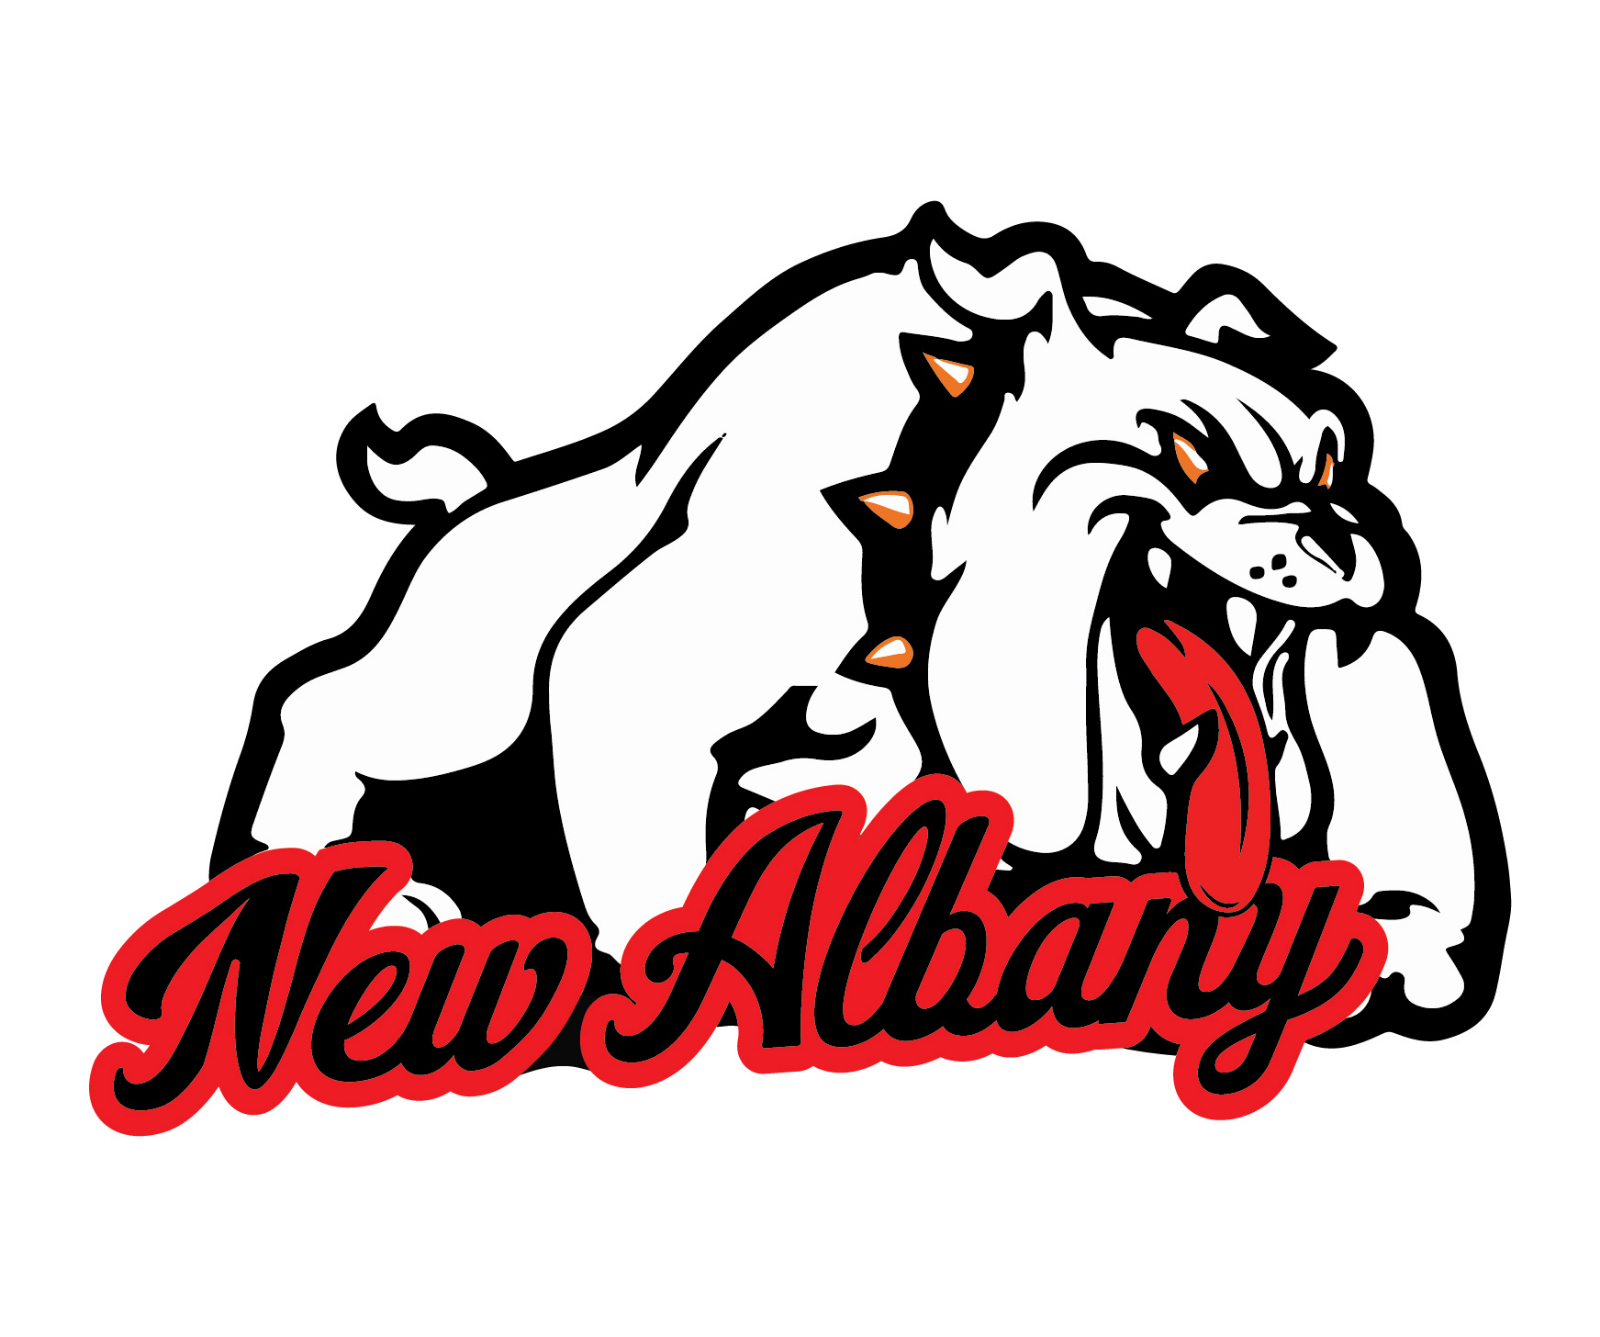 New Albany Athletics will be suspended until further notice